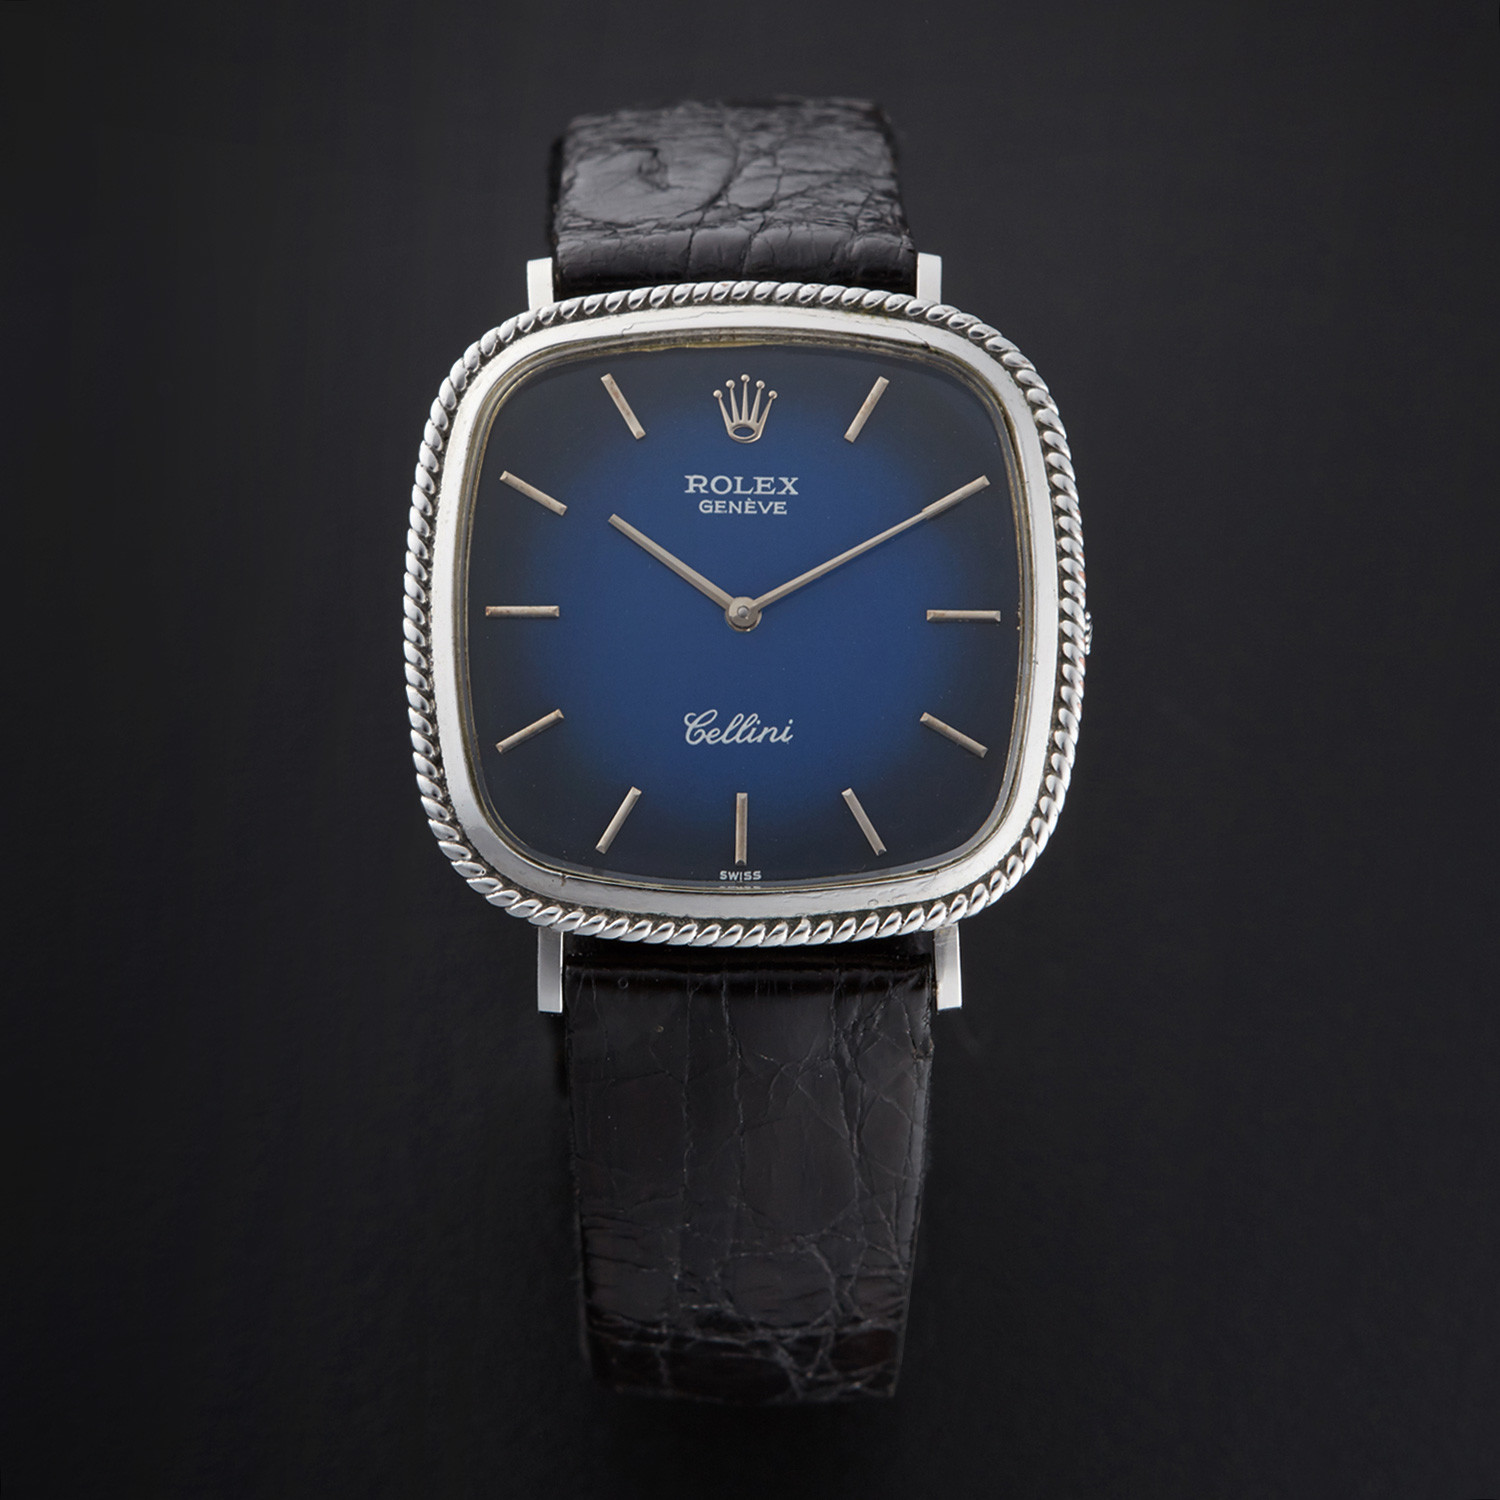 geneve omega vintage wind manual with pinterest pin watches